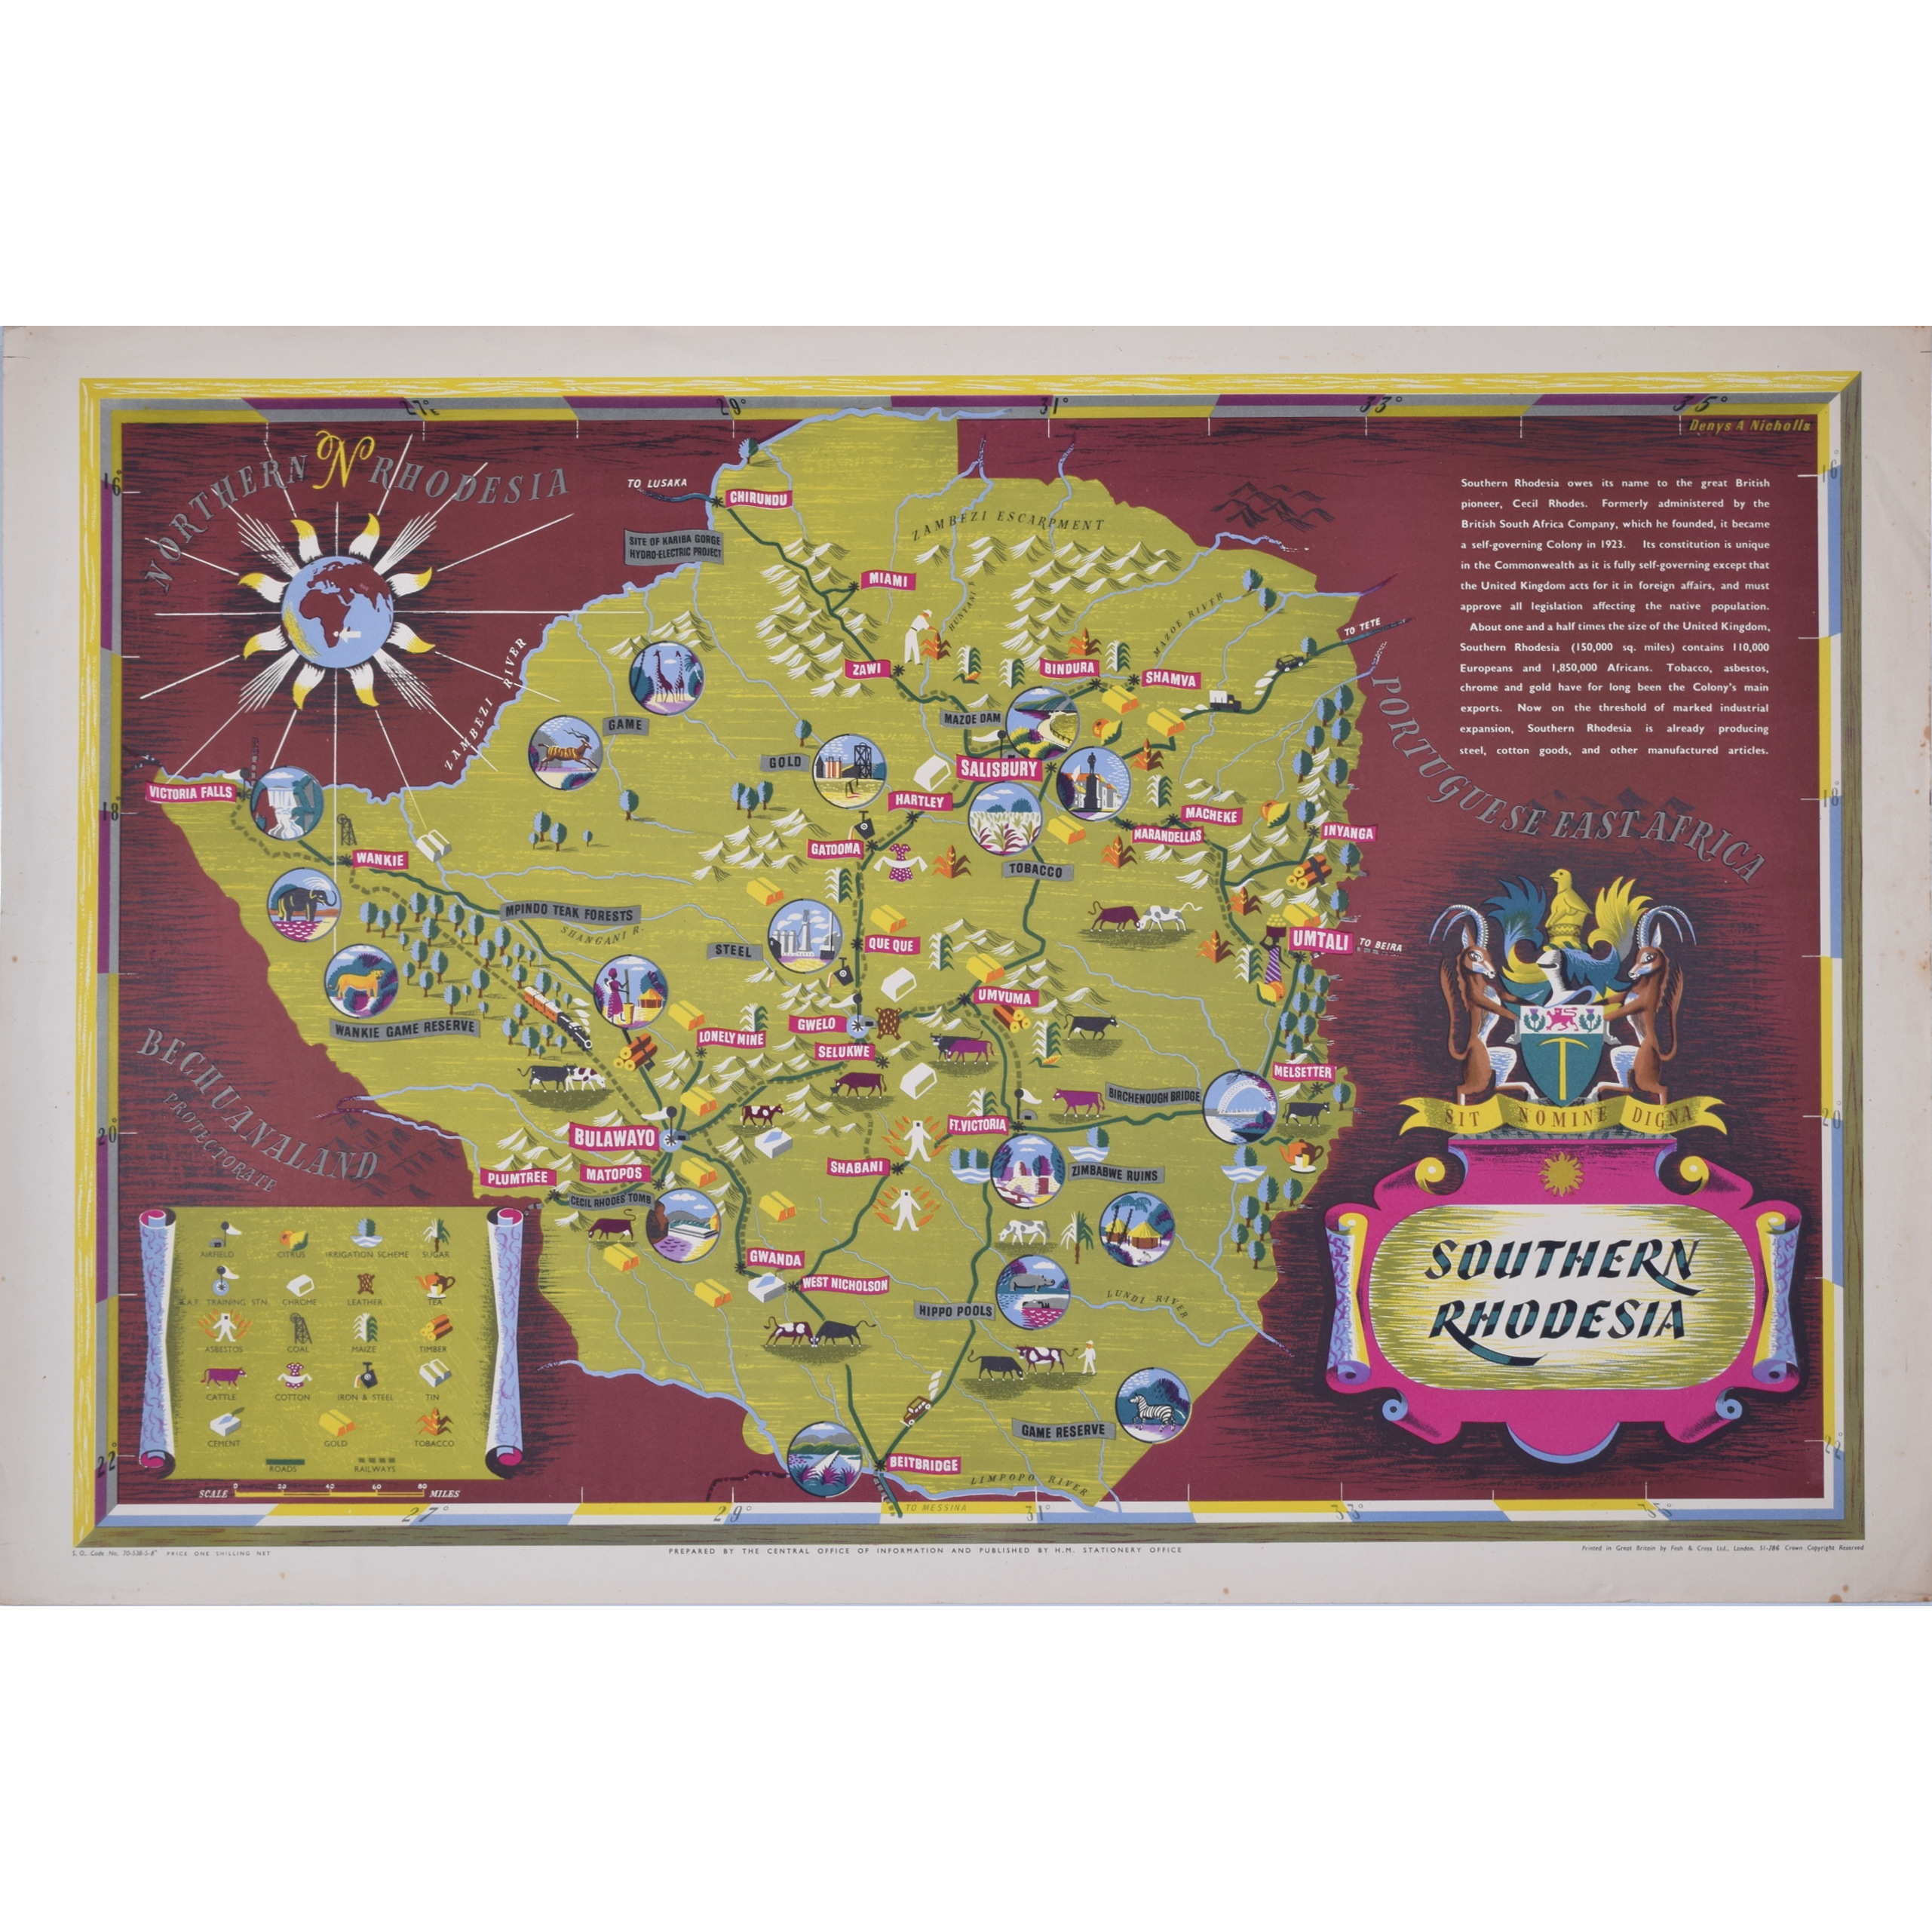 Denys Nicholls Southern Rhodesia original vintage poster map